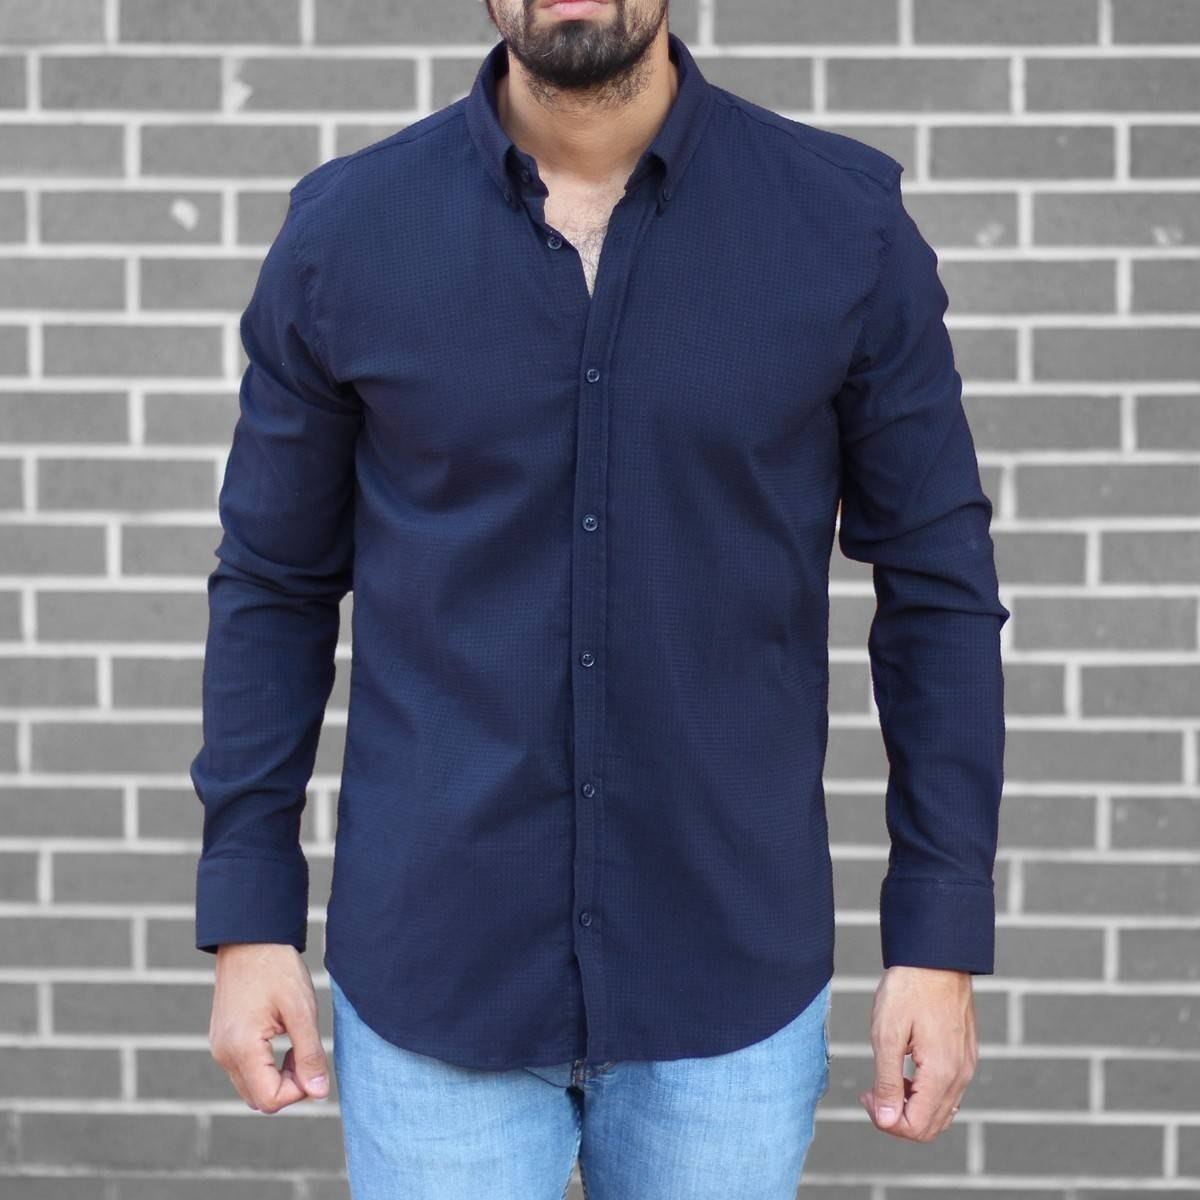 Men's Stylish Lycra Shirt...